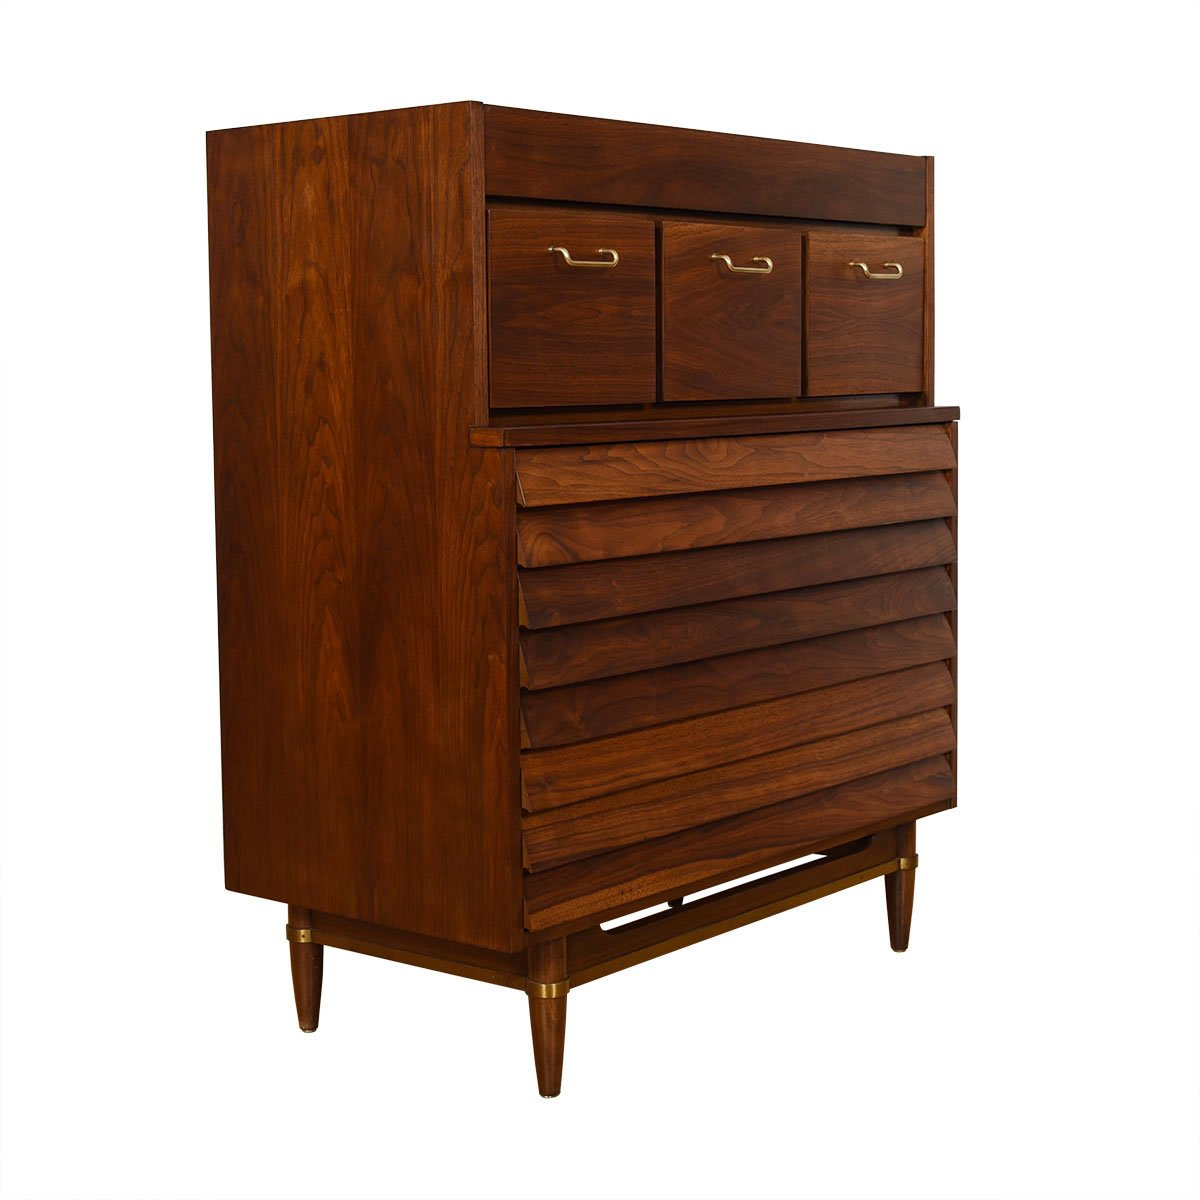 Compact Walnut Mid Century Slatted Front Tall Chest of Drawers / Dresser.